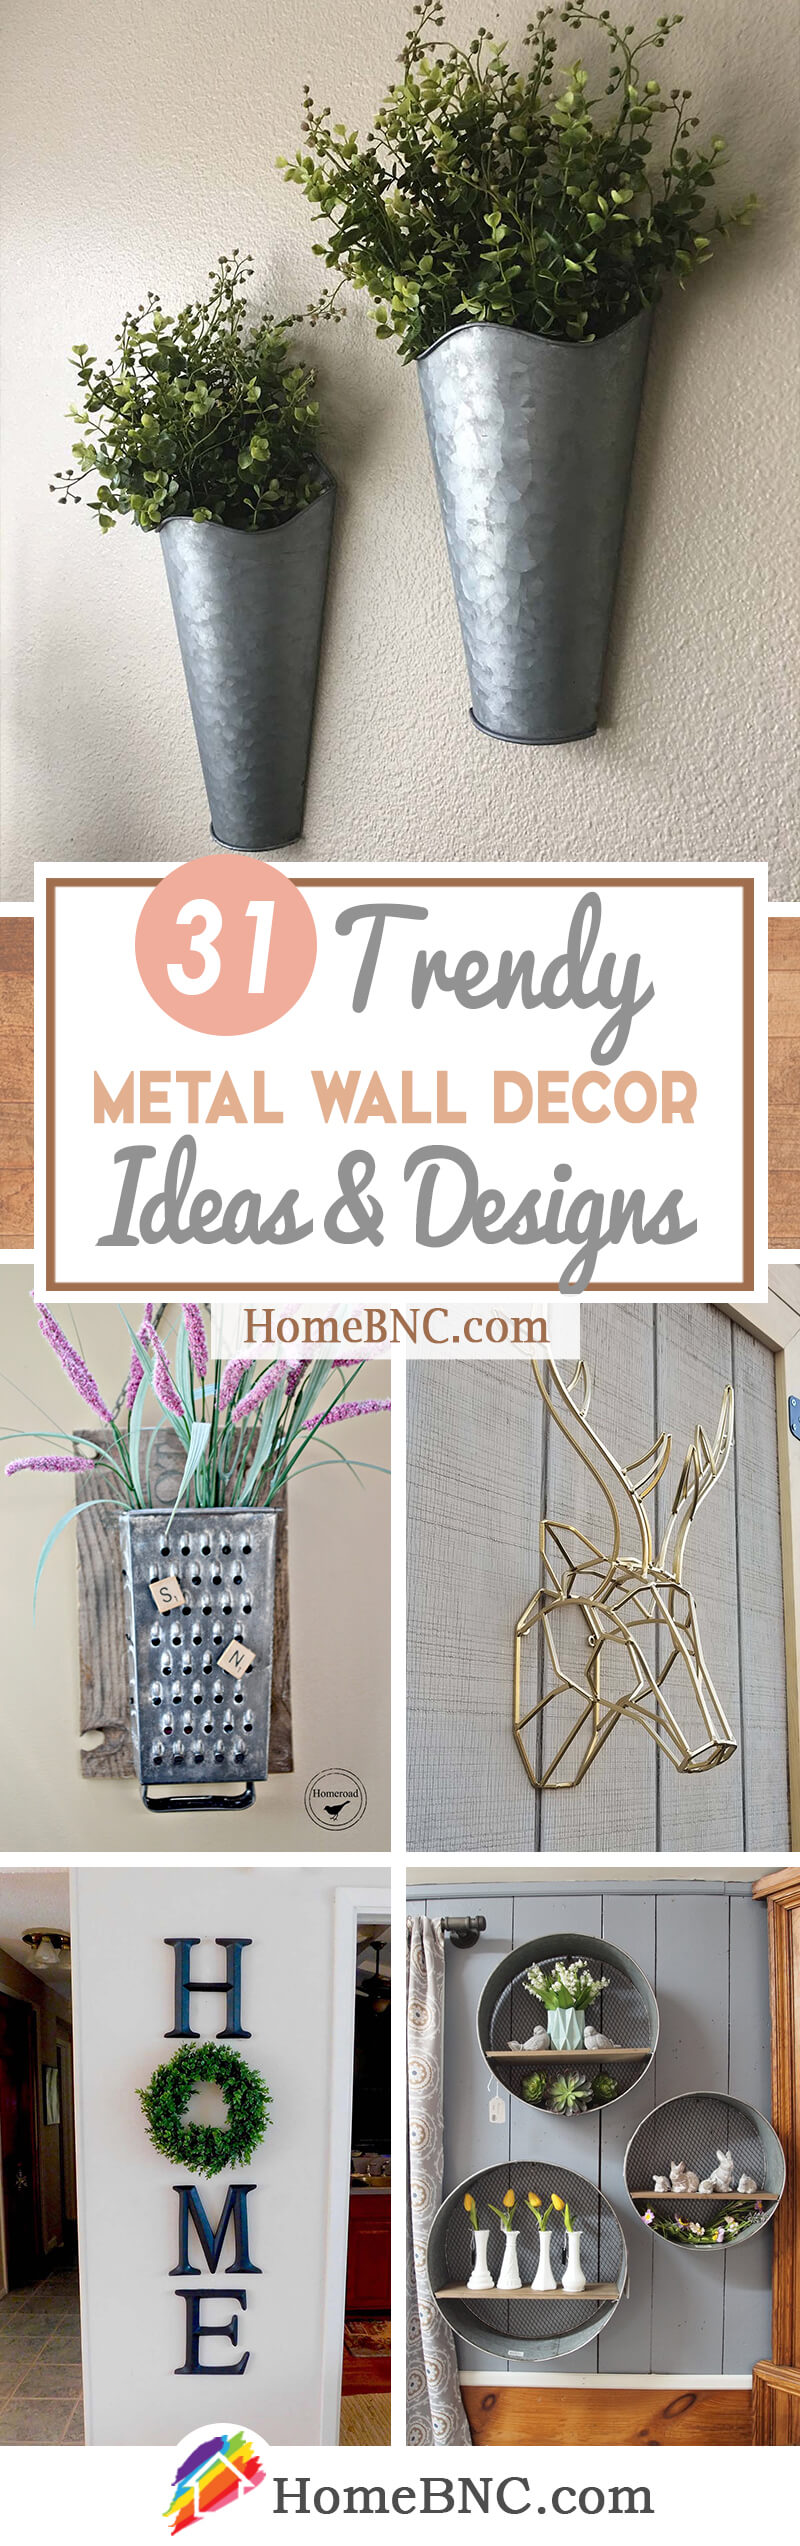 Metal Wall Decor Ideas